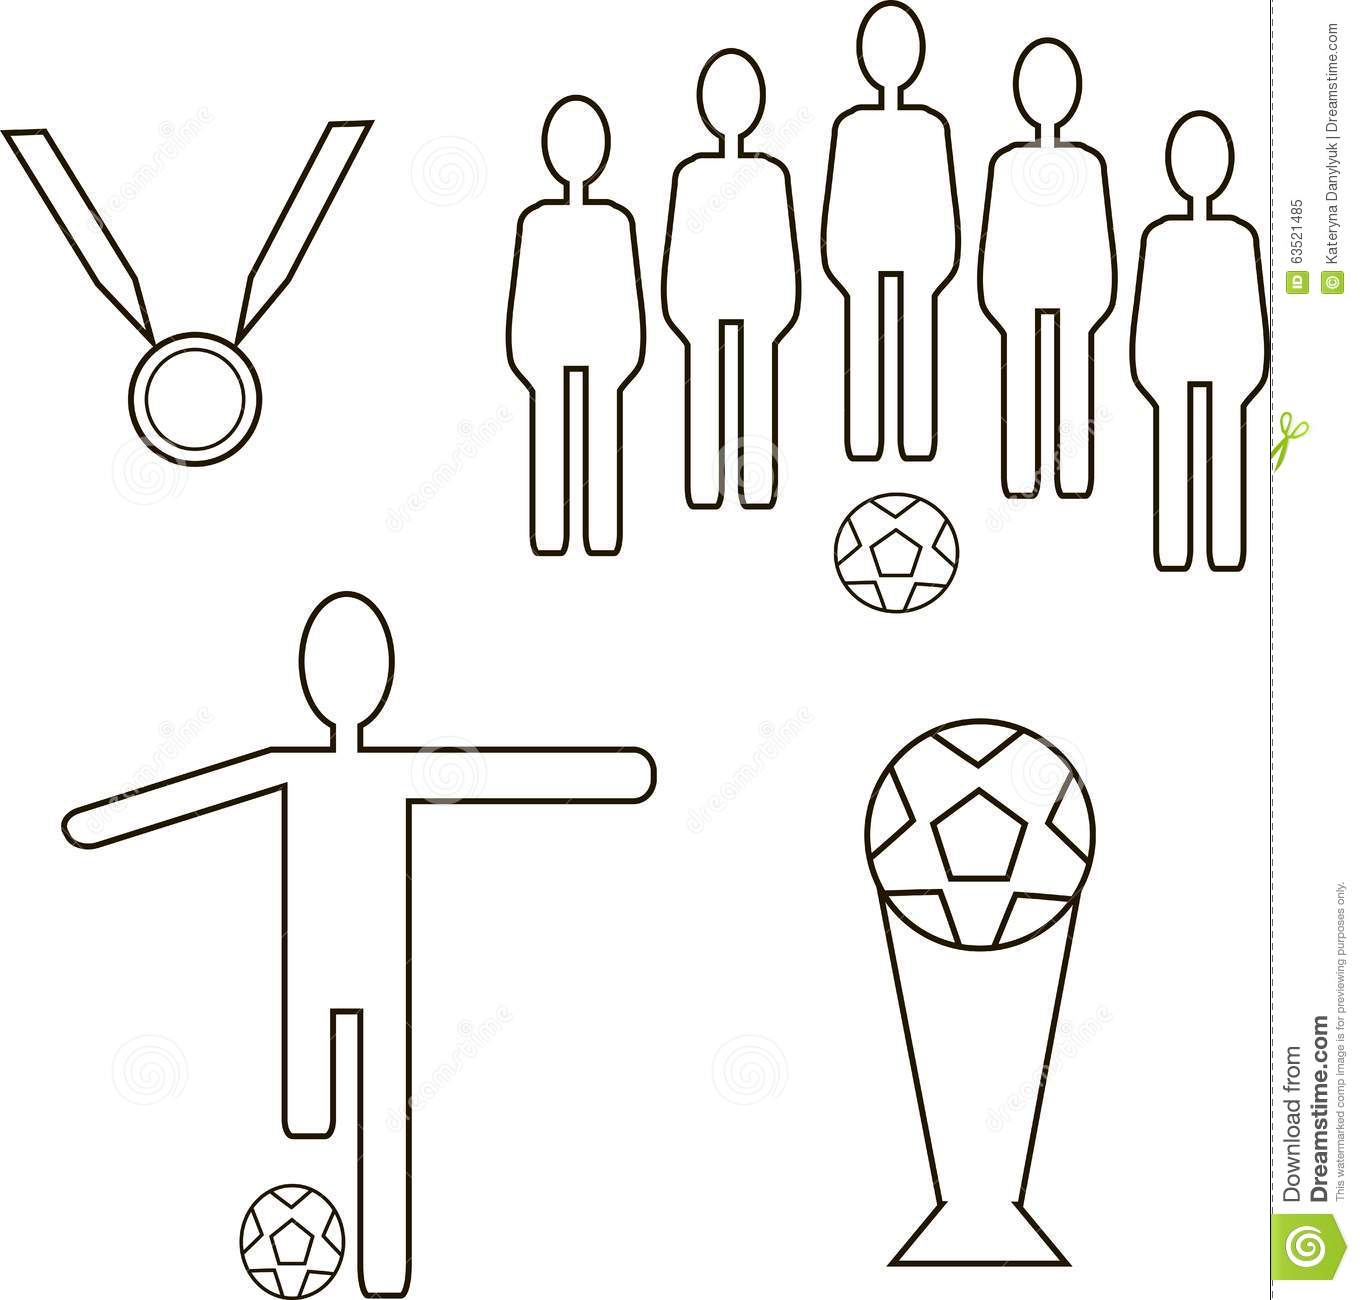 Football Icons. The Team With The Ball, The Player With